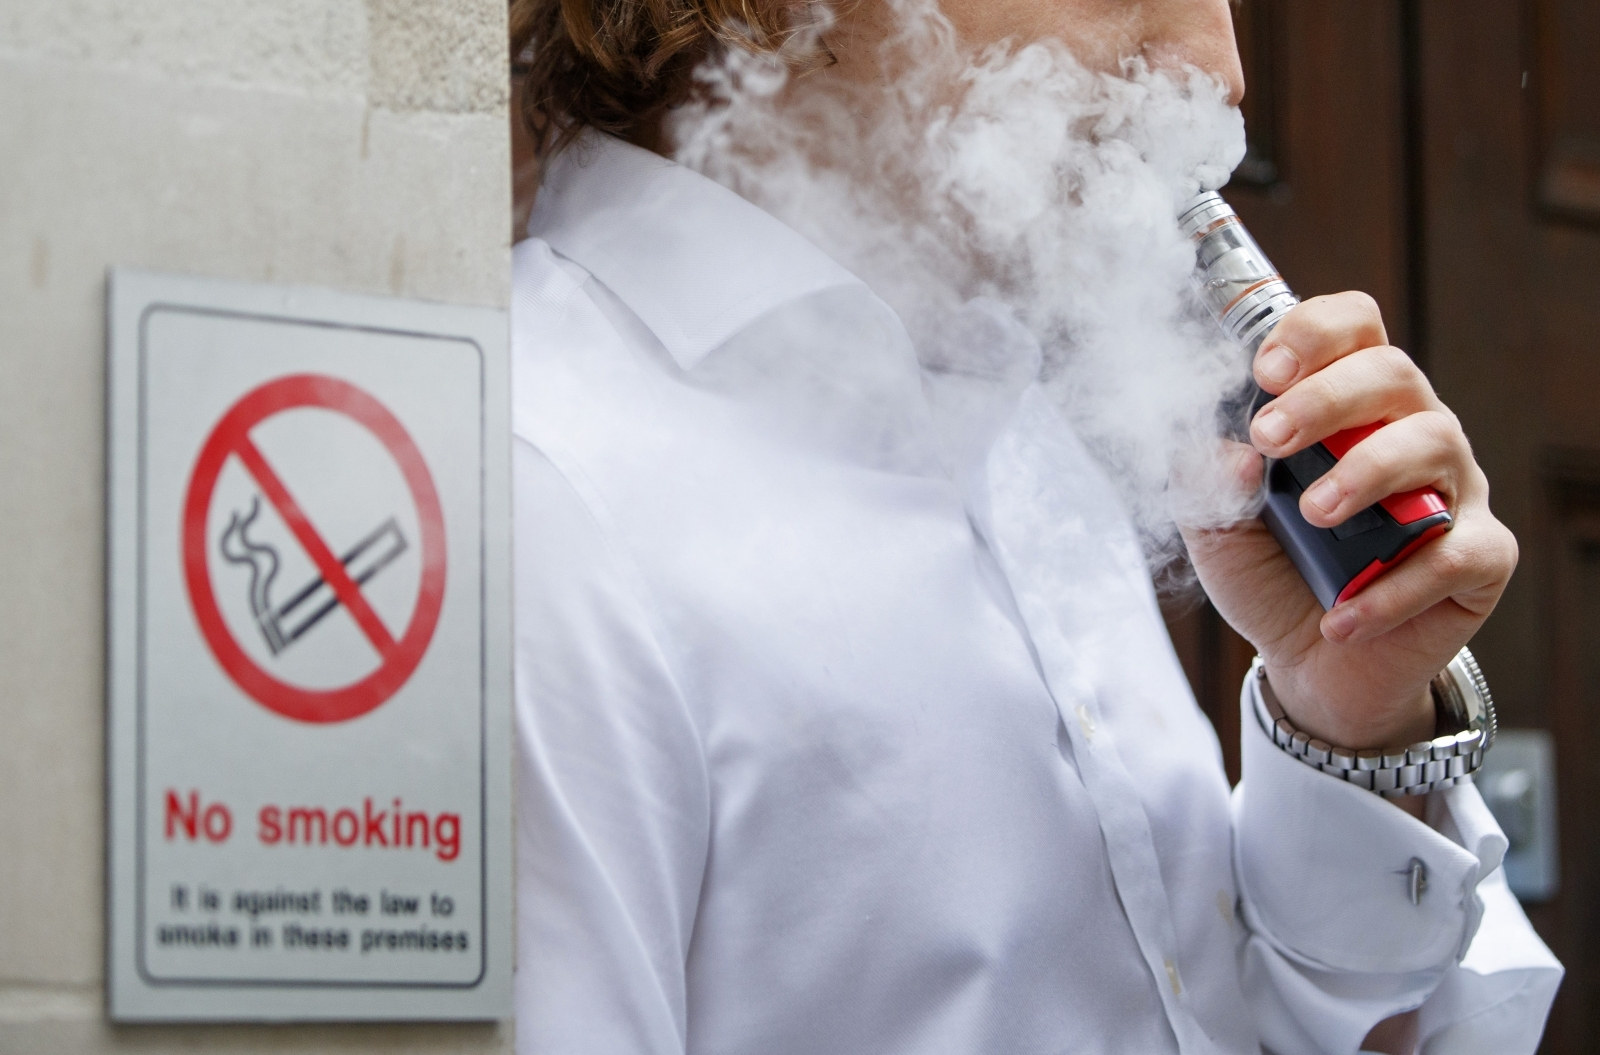 More US teens are vaping than smoking cigarettes, study finds